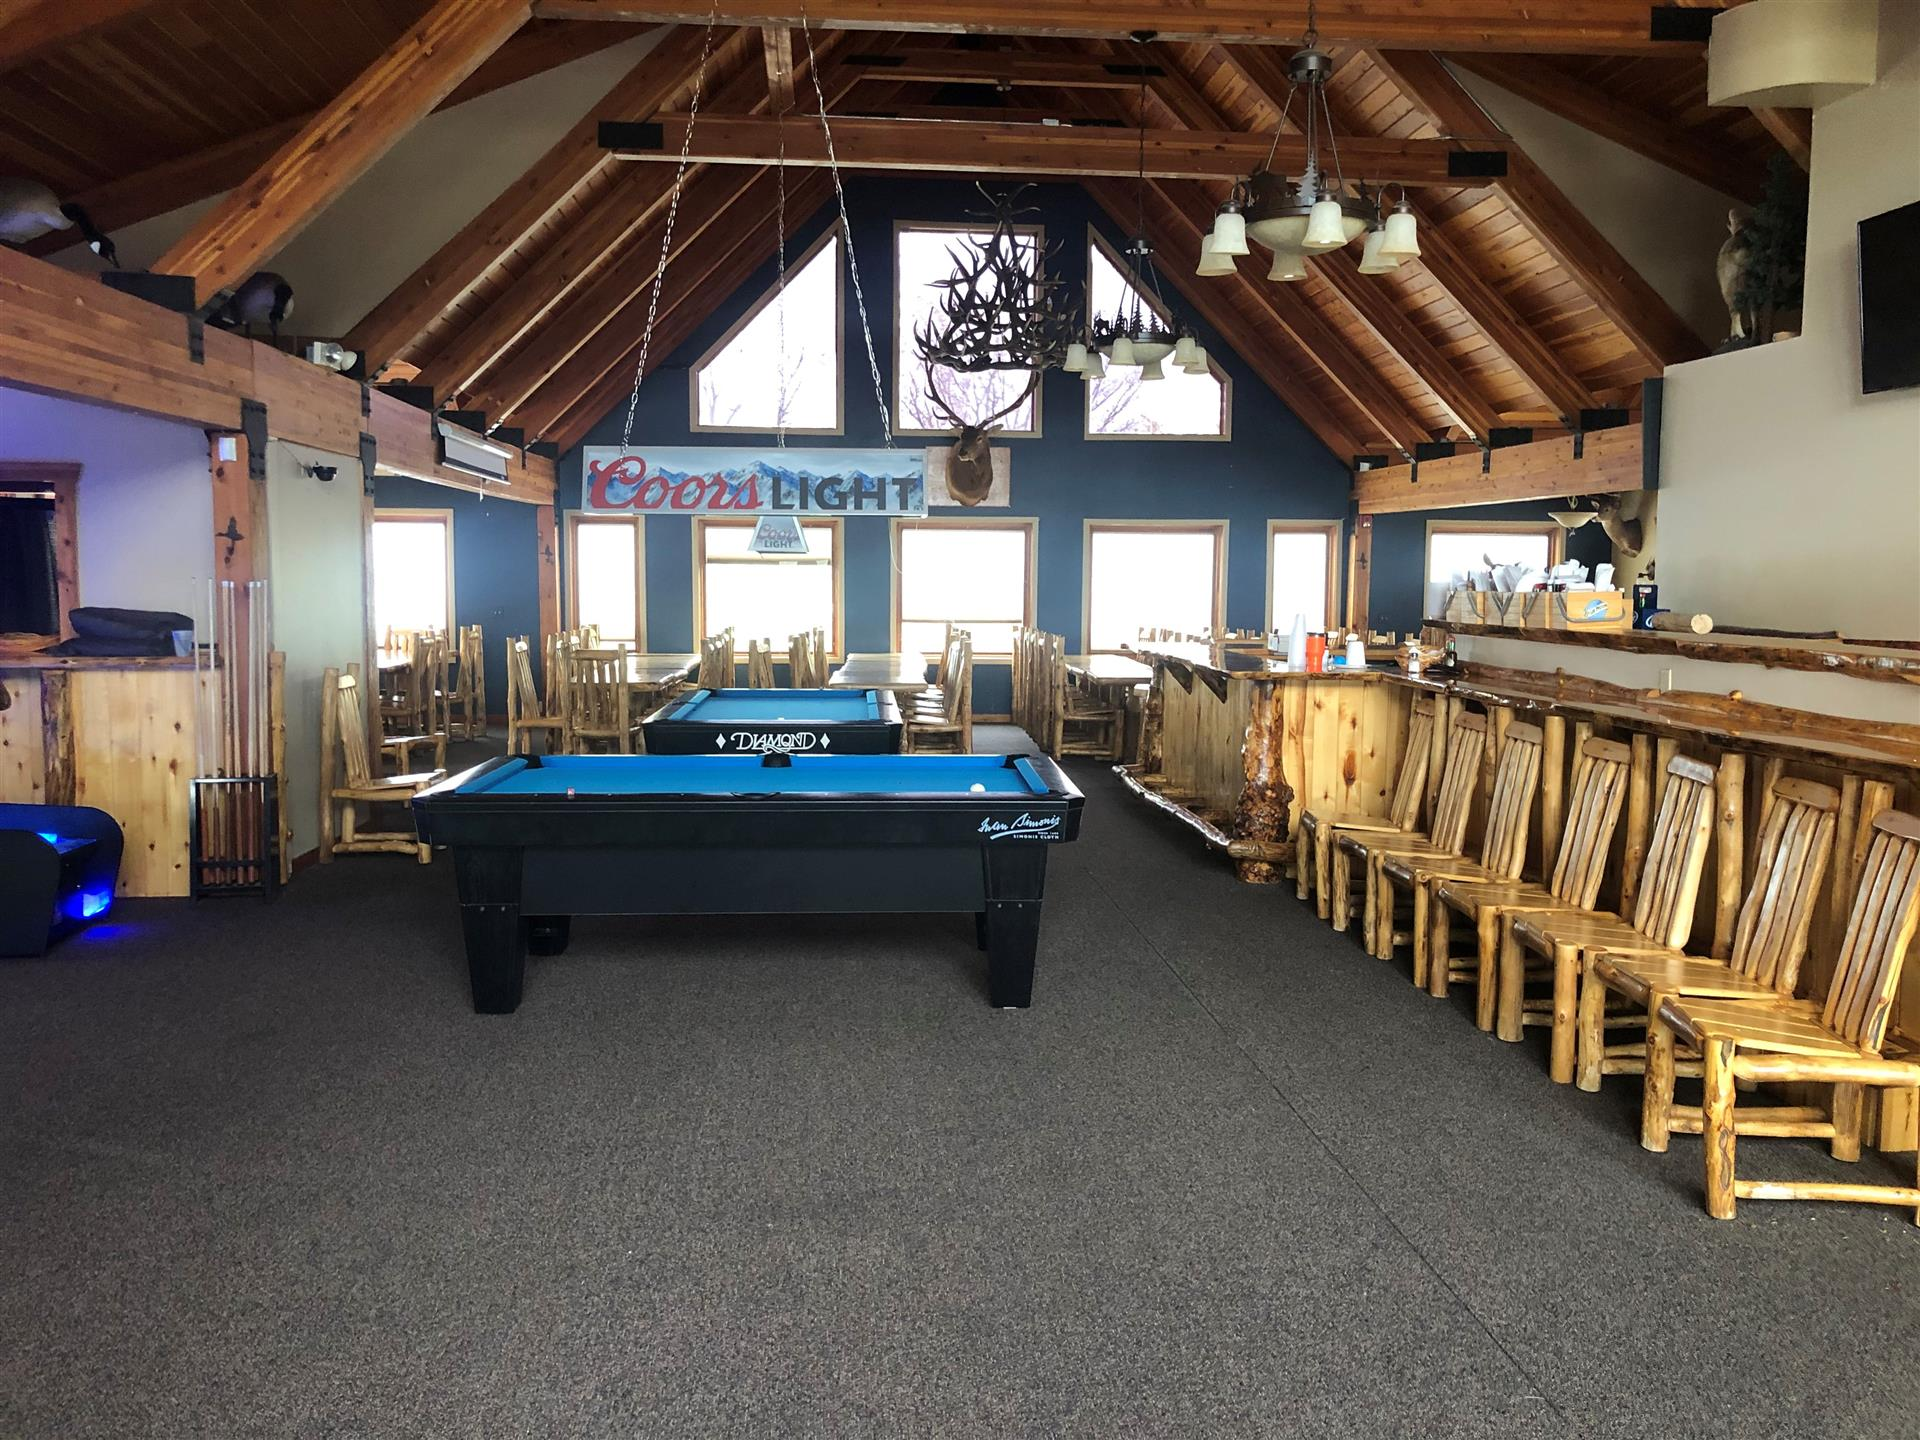 2 pool tables in an open room with wooden tables and chairs around